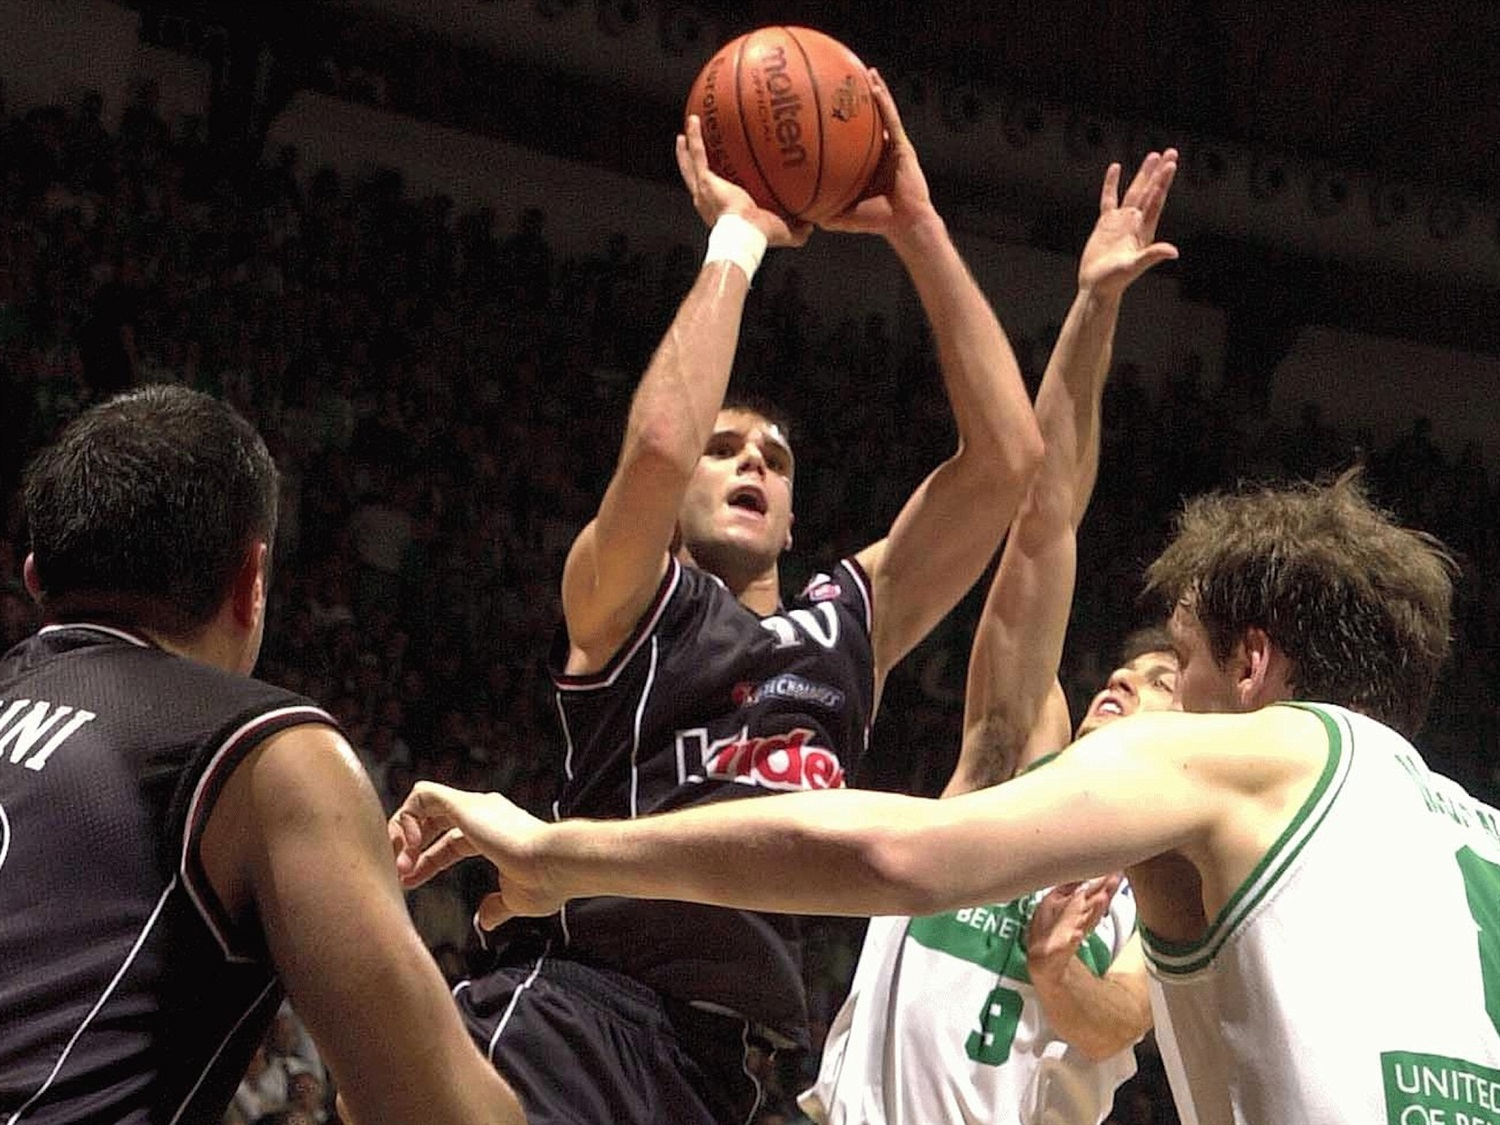 Sani Becirovic - Kinder Virtus Bologna - Final Four Bologna 2002 - EB01